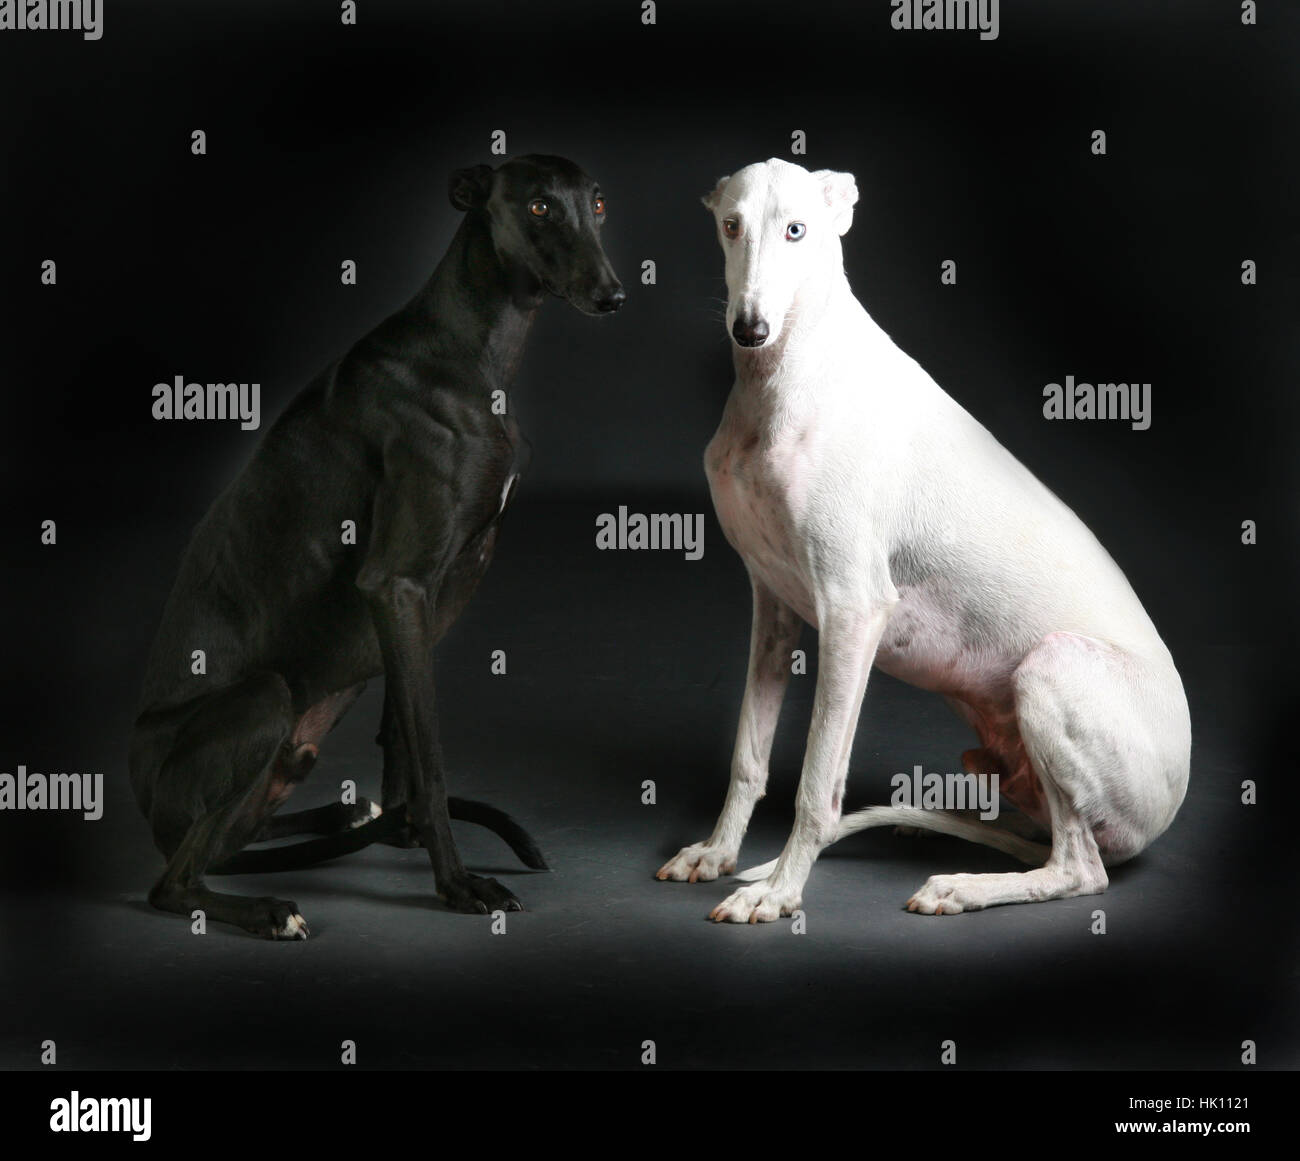 Black and white greyhound together - Stock Image